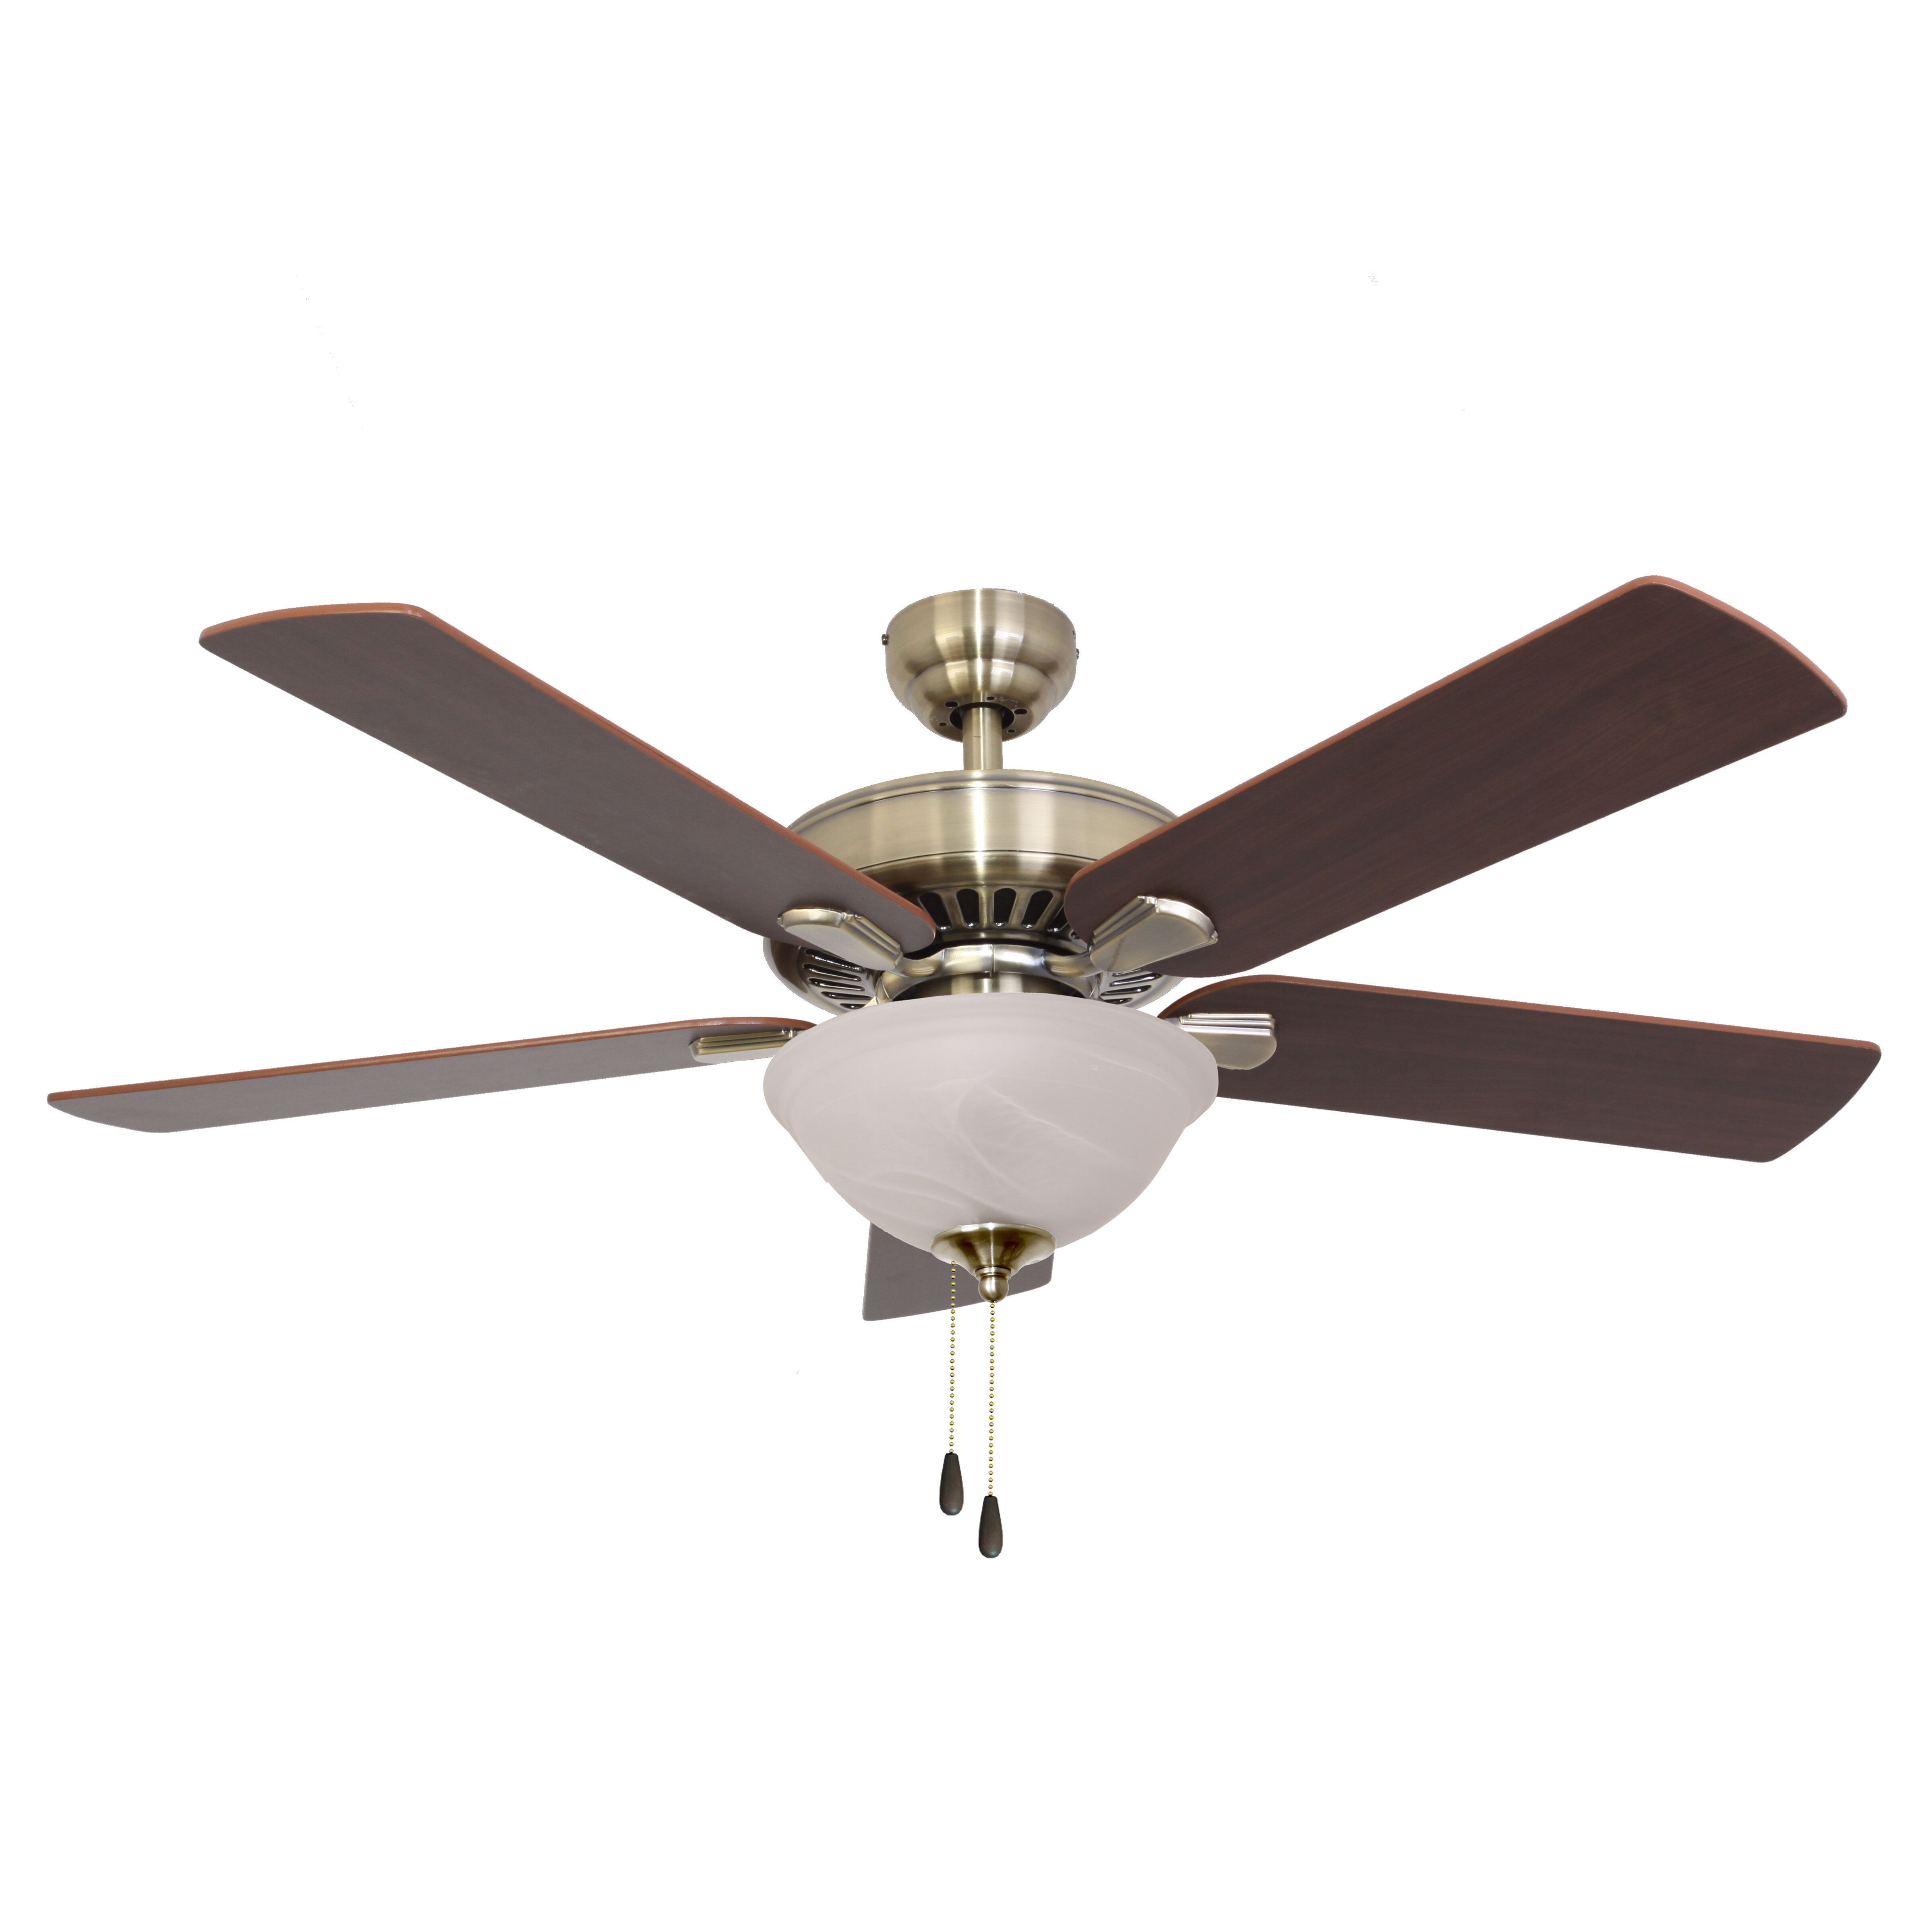 Charlton Home 52 Wilma 5 Blade Leaf Blade Ceiling Fan With Pull Chain And Light Kit Included Reviews Wayfair